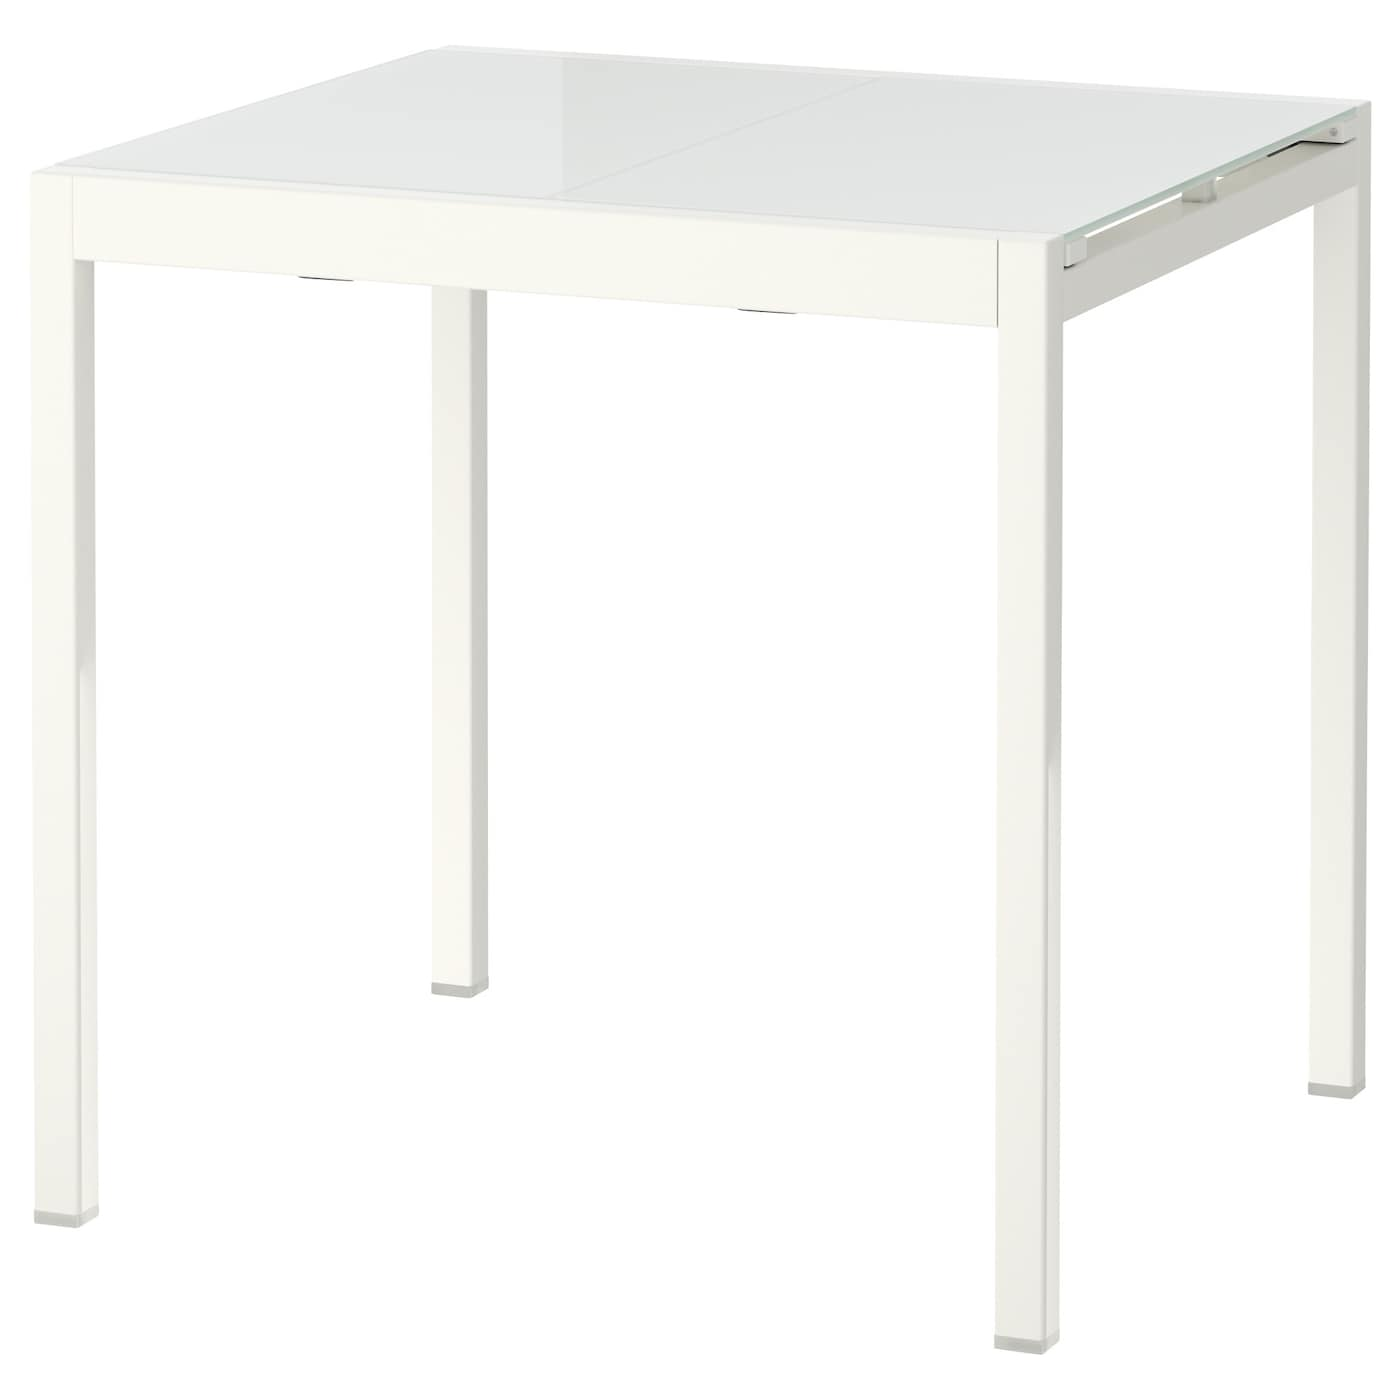 glivarp extendable table white 75 115x70 cm ikea